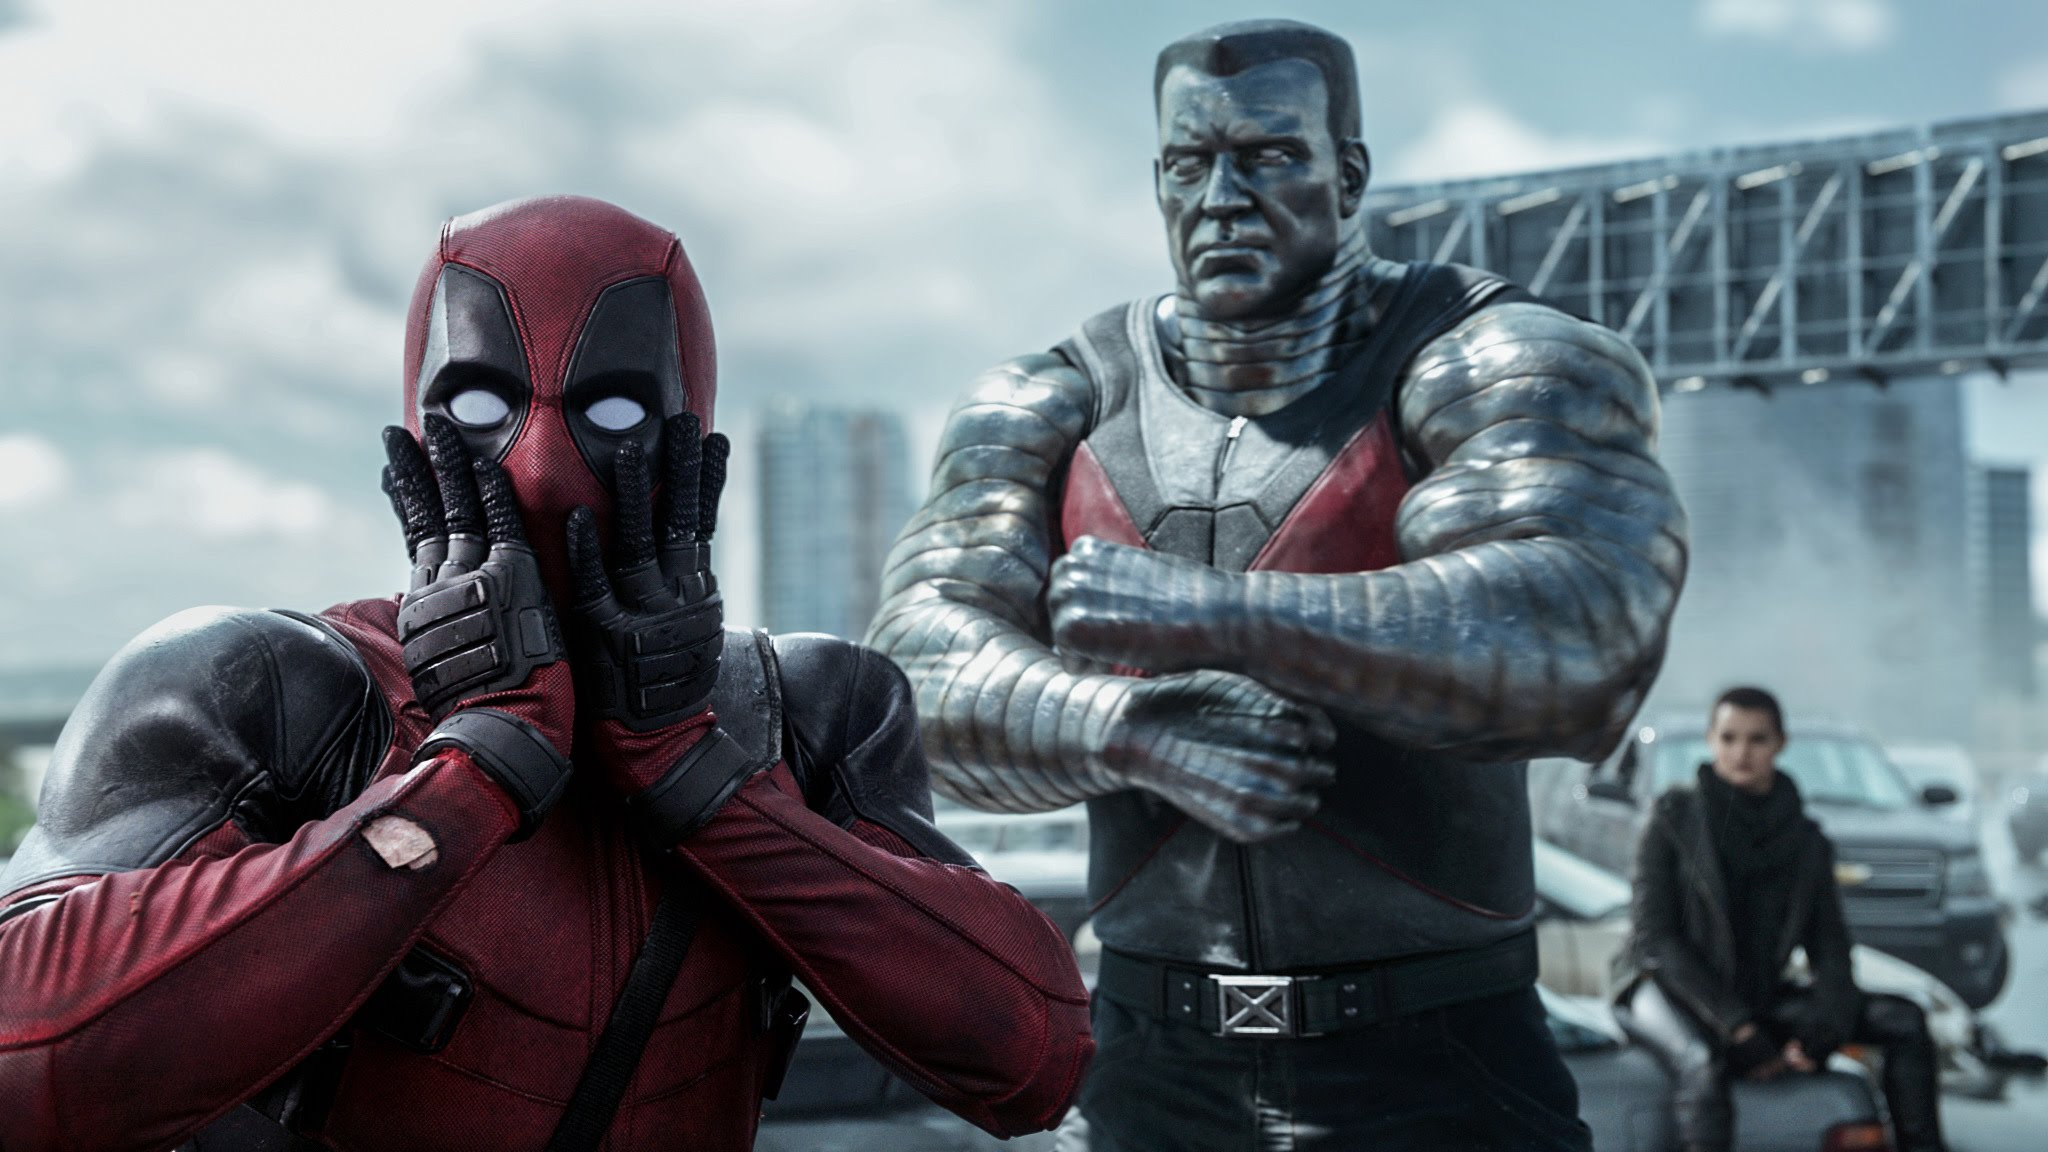 John Wick Director David Leitch, Frontrunner to Helm Deadpool 2